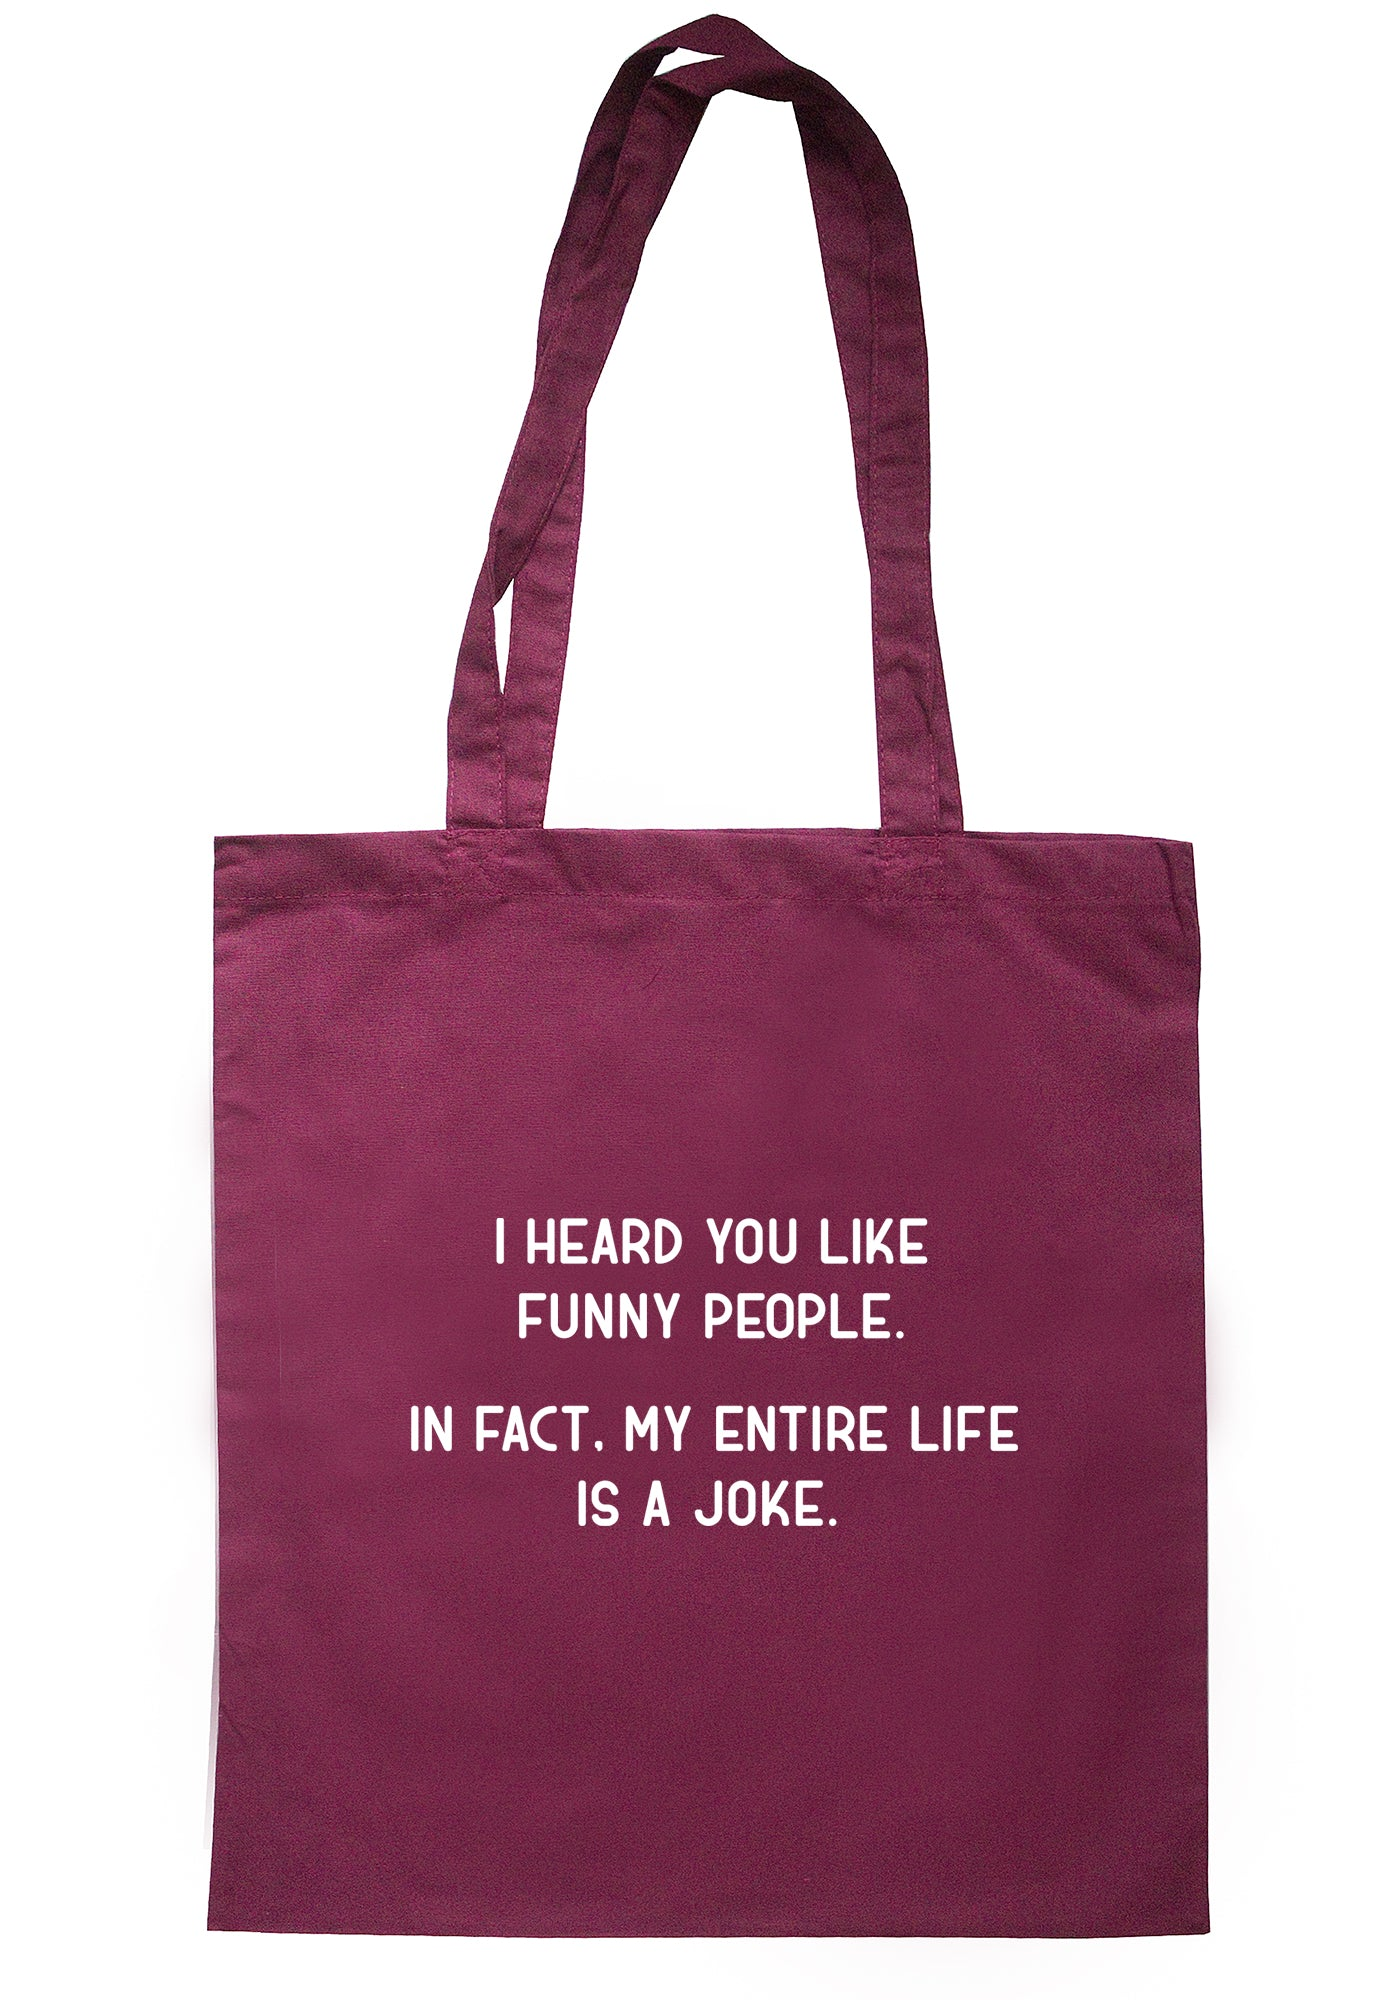 I Heard You Like Funny People. In Fact, My Entire Life Is A Joke Tote Bag S1120 - Illustrated Identity Ltd.